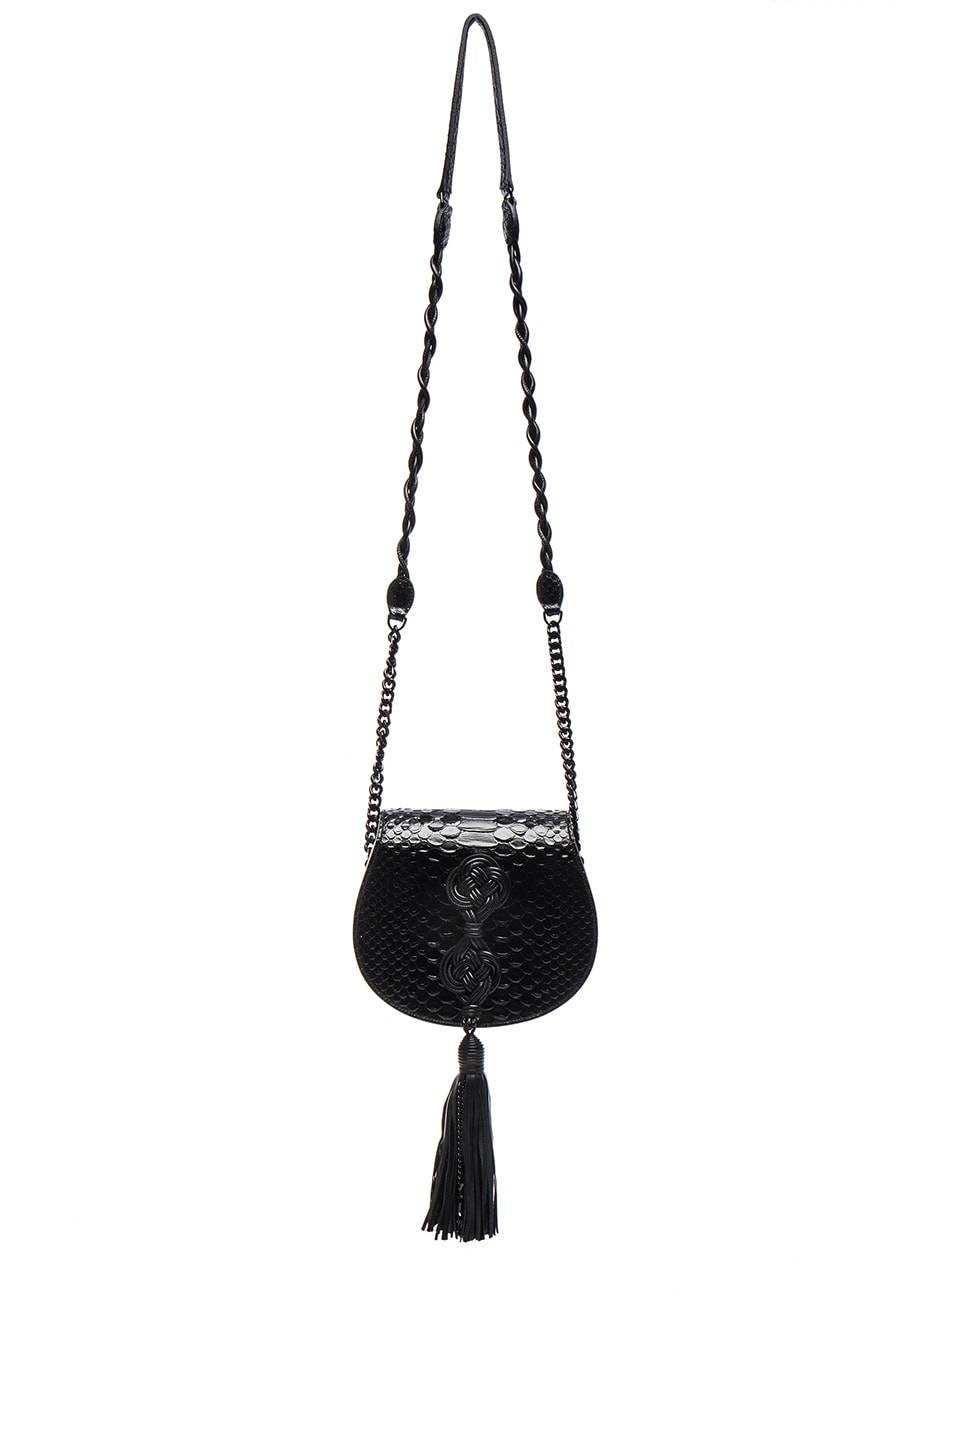 ysl cabas chyc large leather tote - yves saint laurent small suede passementerie chain bag, tote ysl